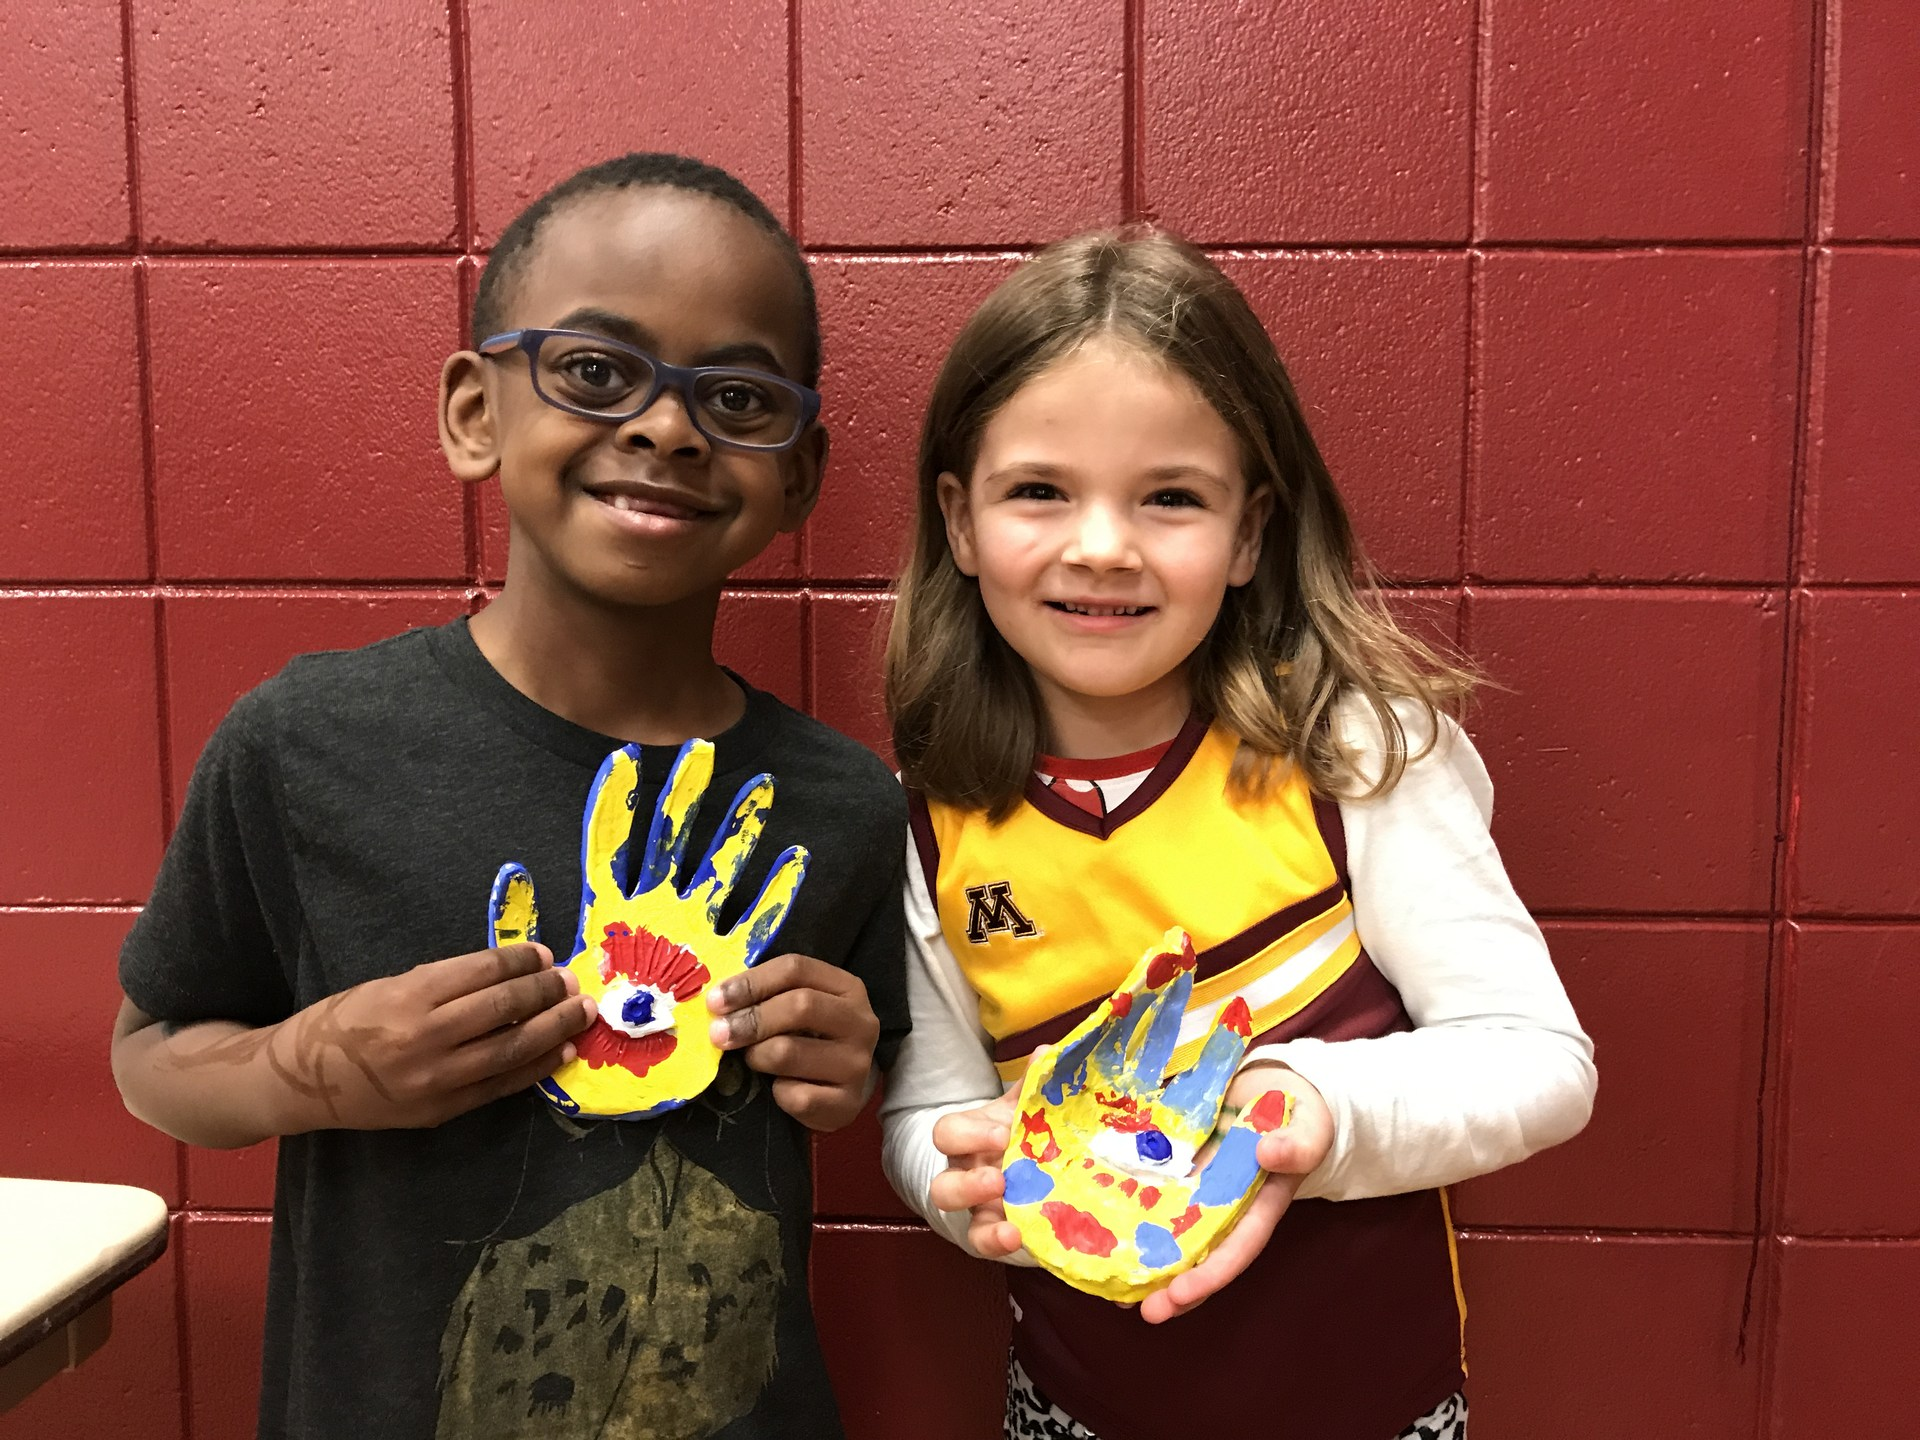 Students holding up a hand art piece.